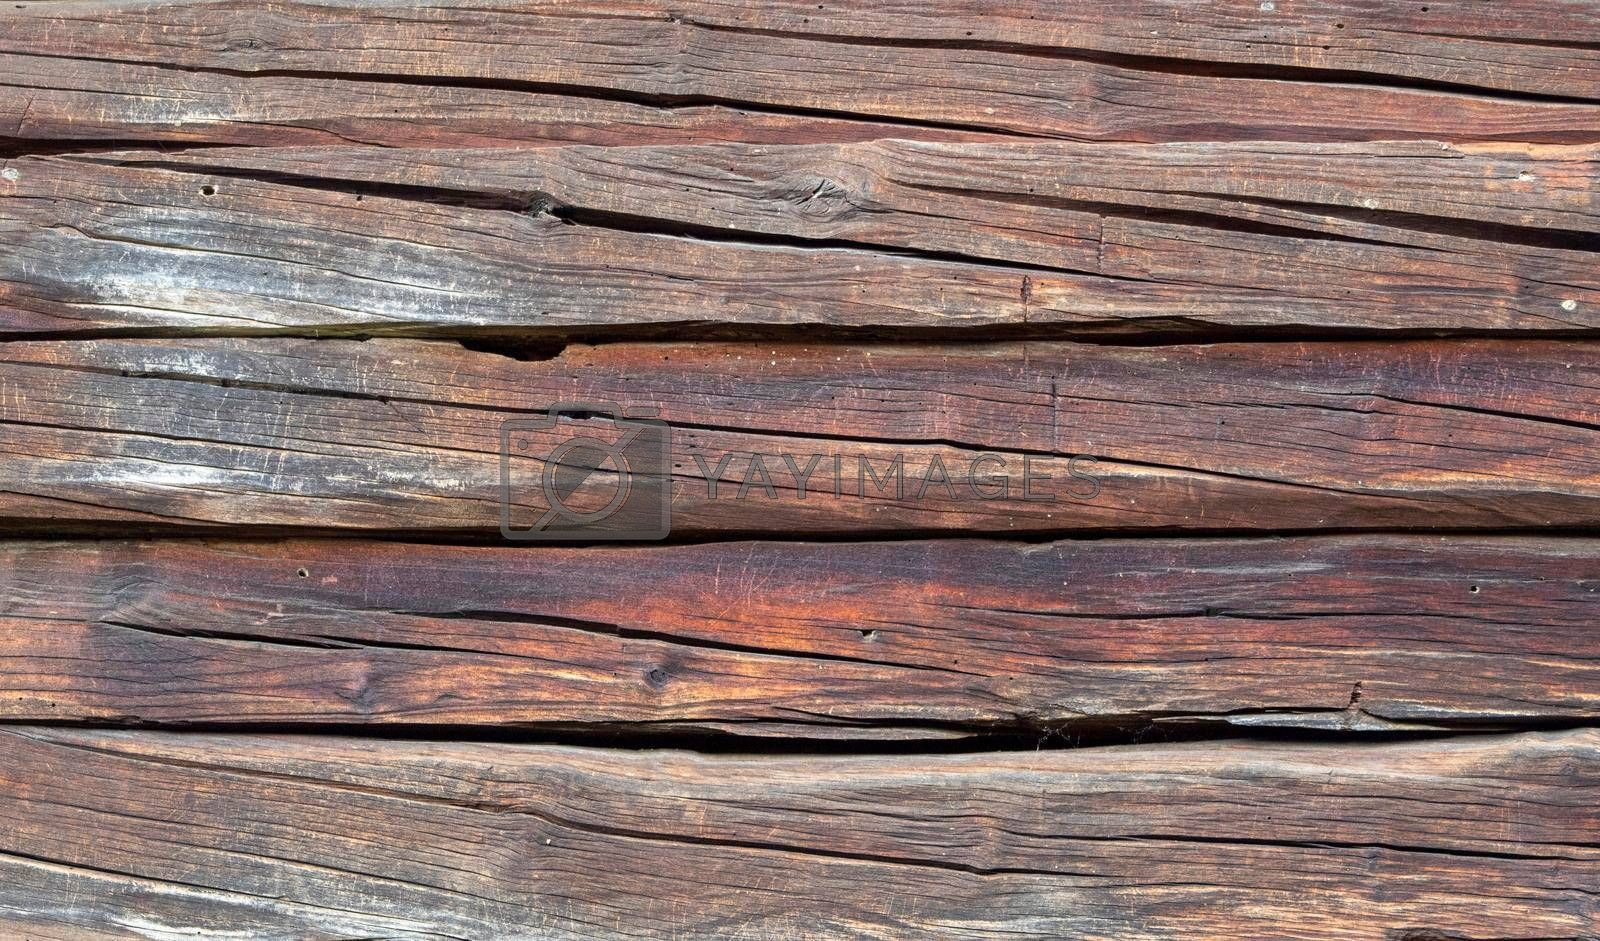 A bright wooden texture on a house